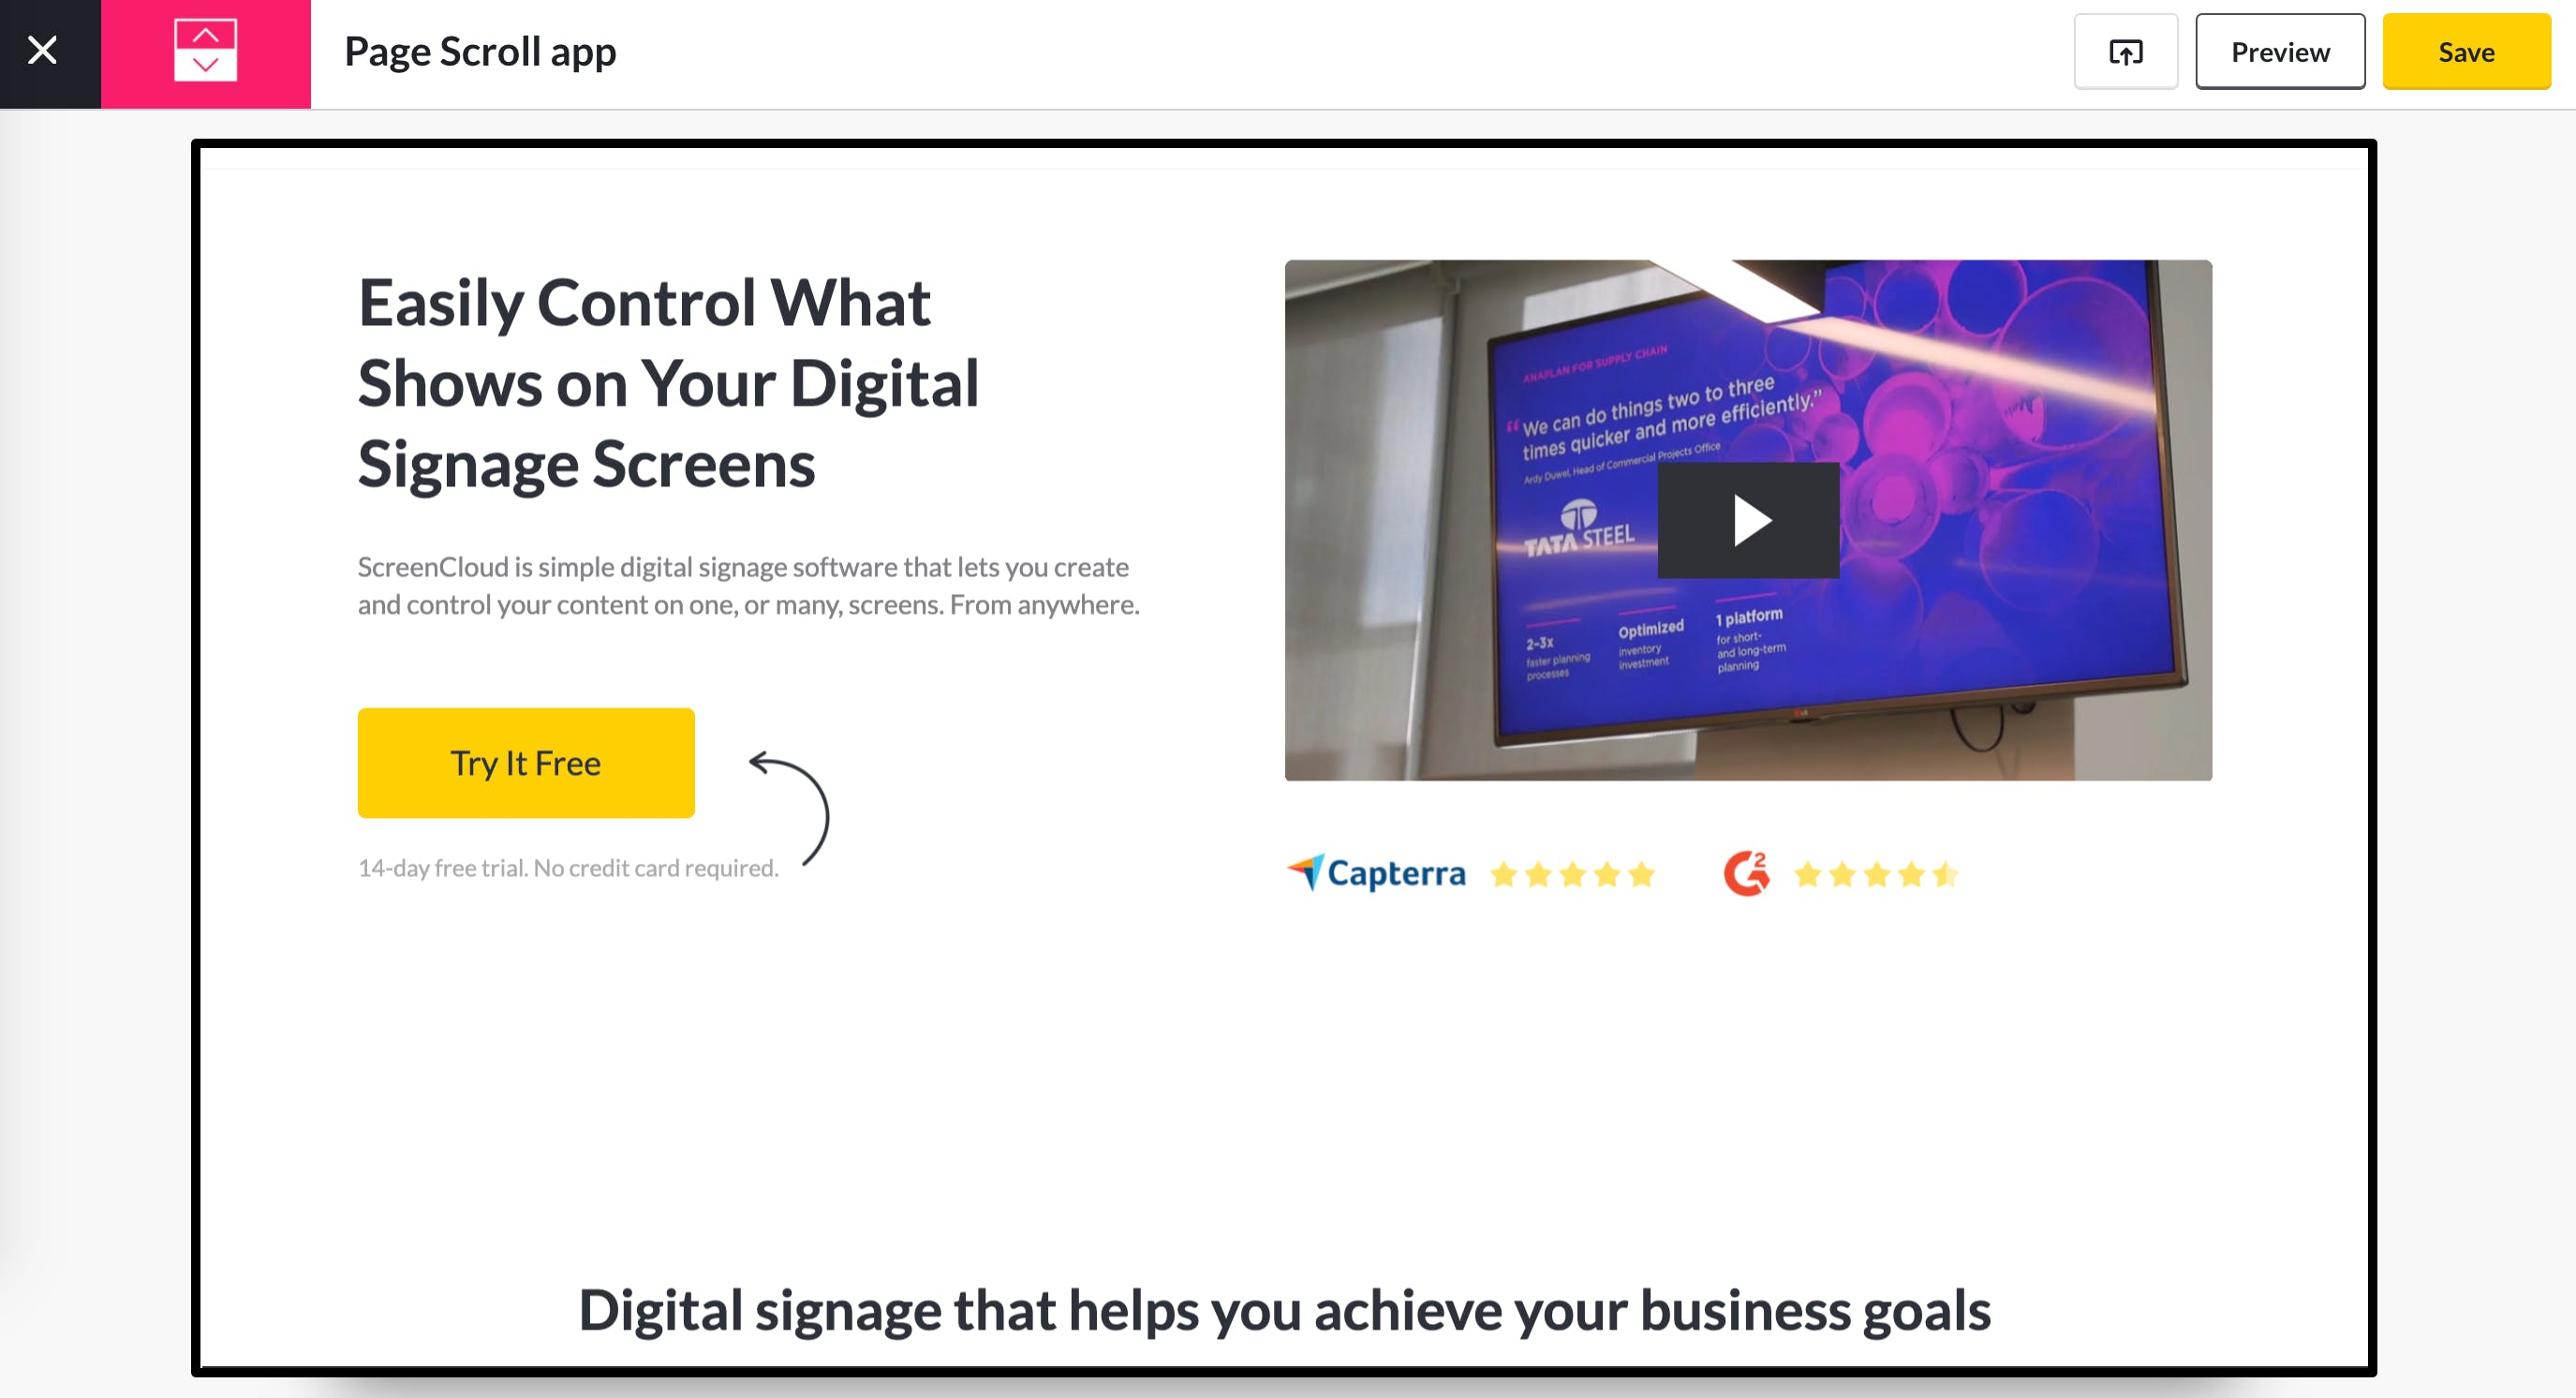 Page Scroll App Guide - Preview 5.13.2020.png